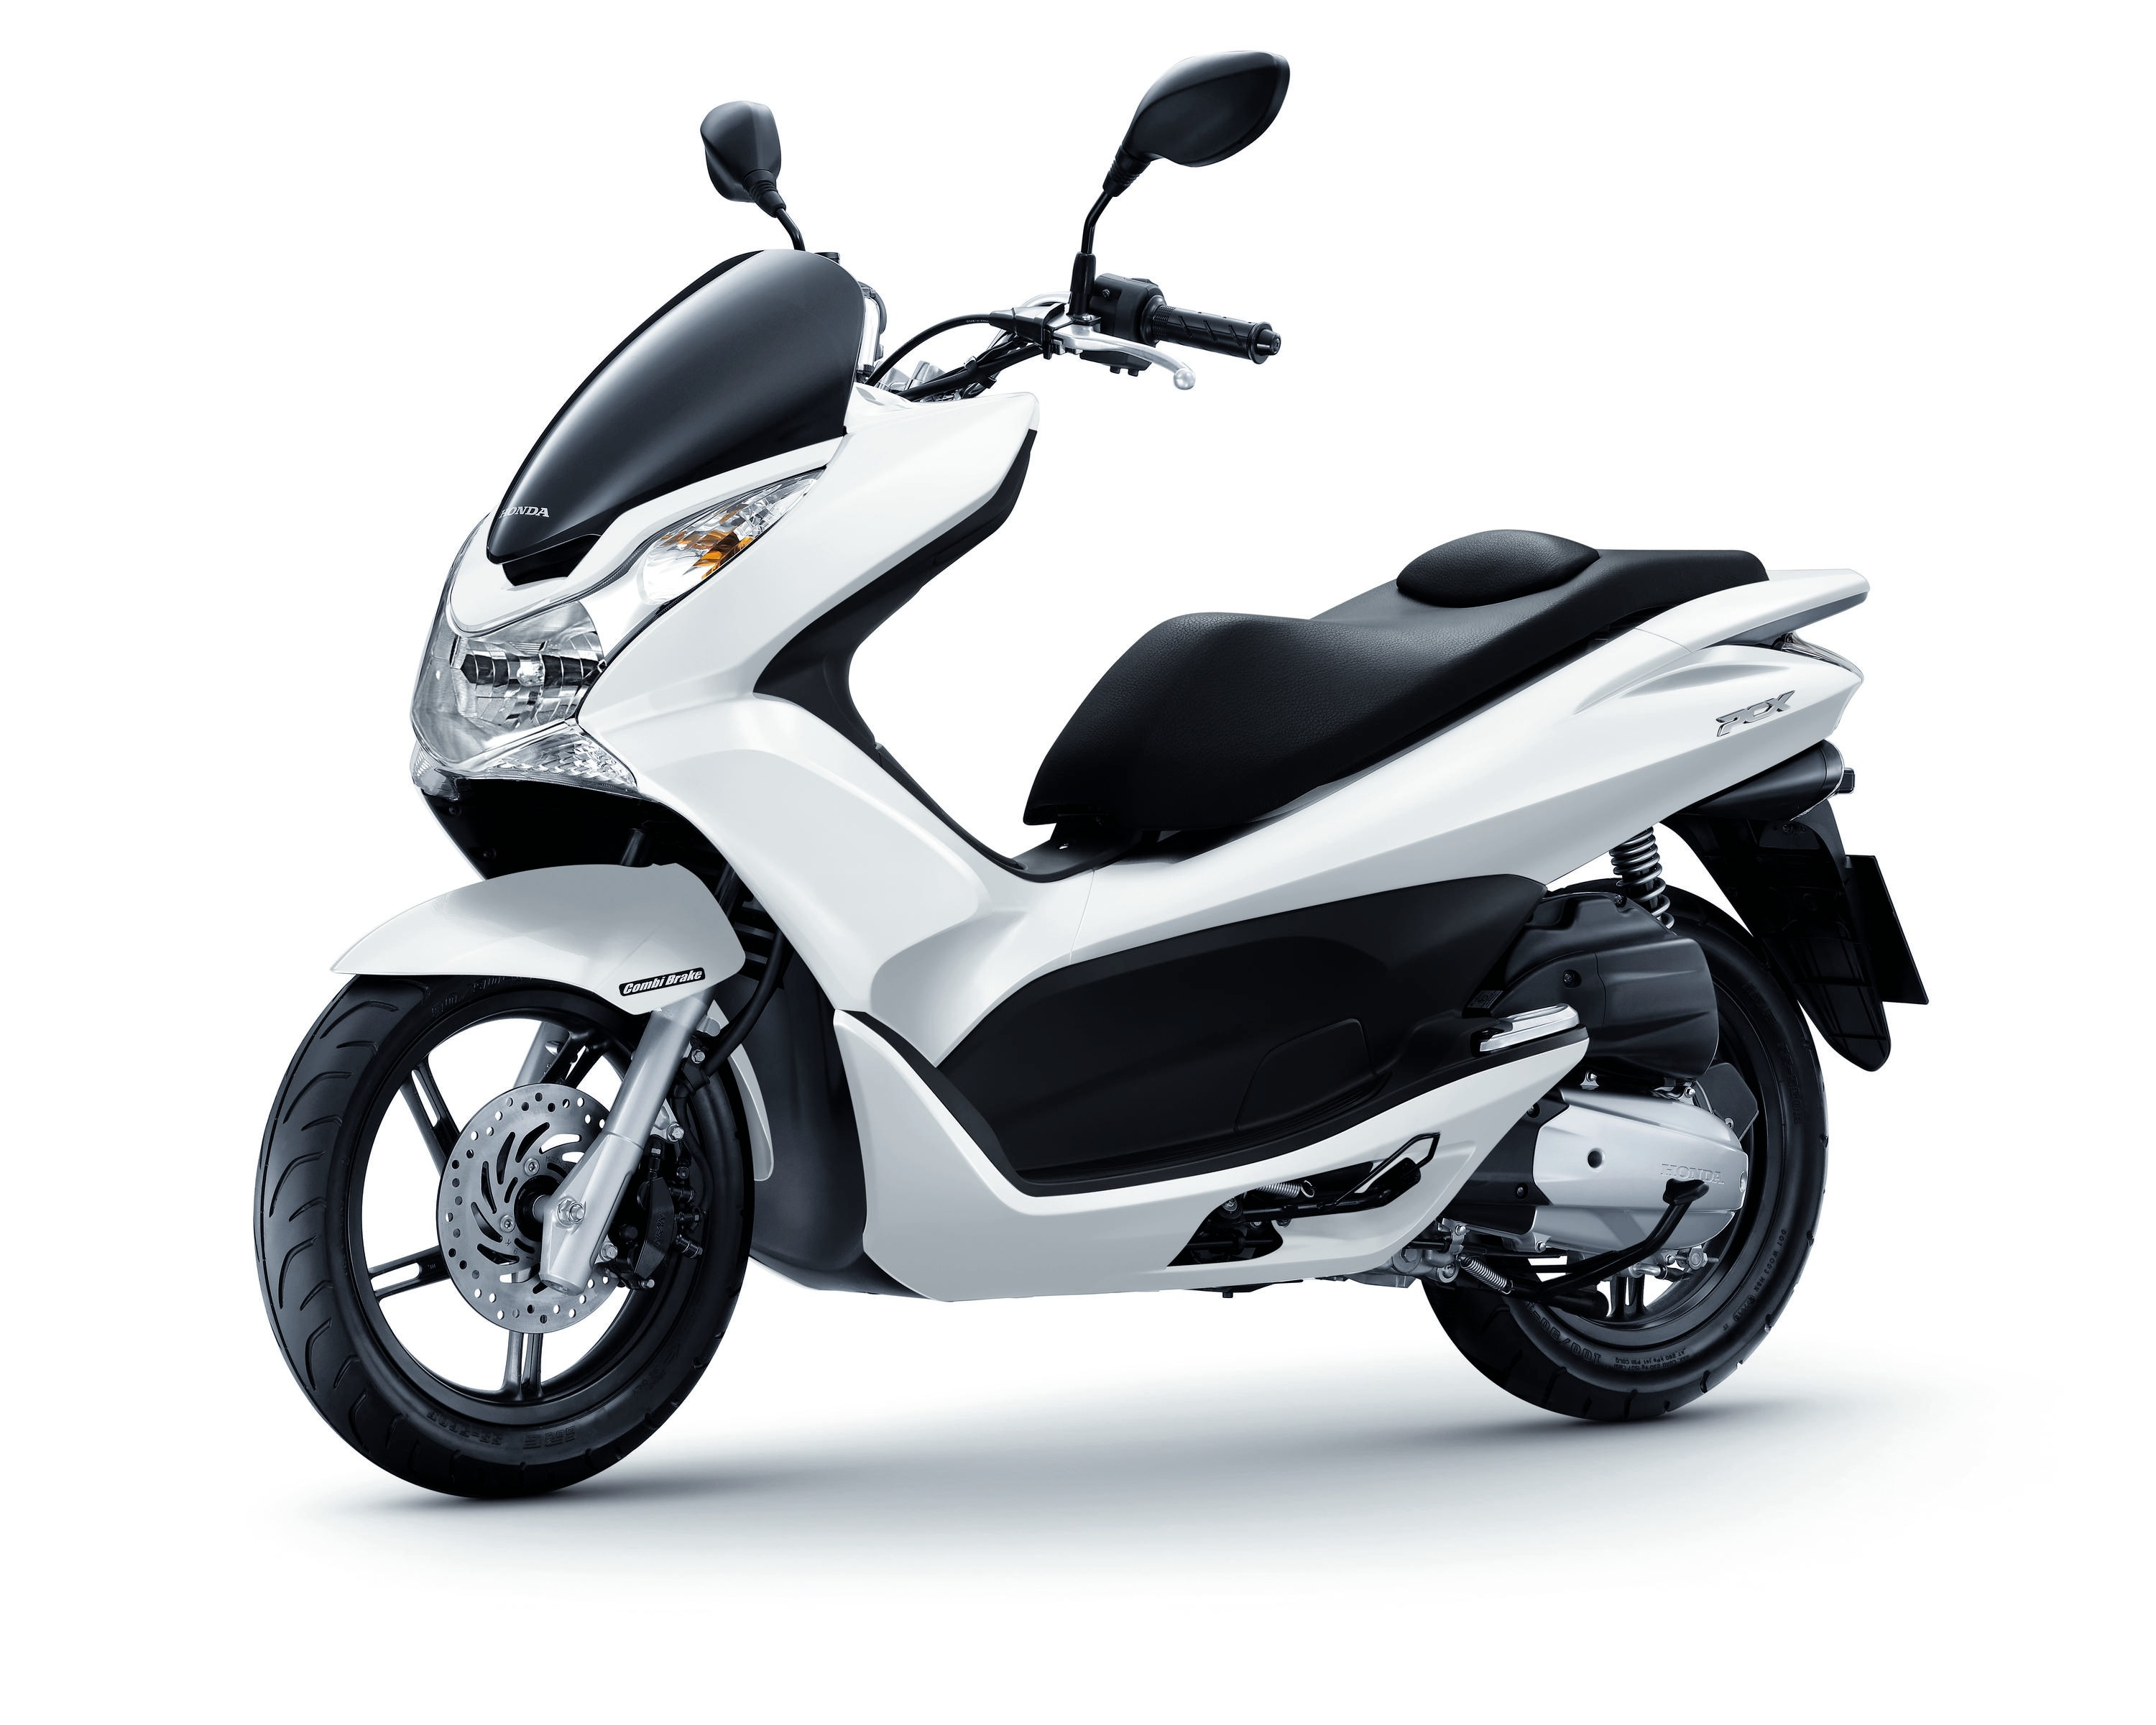 chiave scooter per honda pcx 125 milano my blog. Black Bedroom Furniture Sets. Home Design Ideas